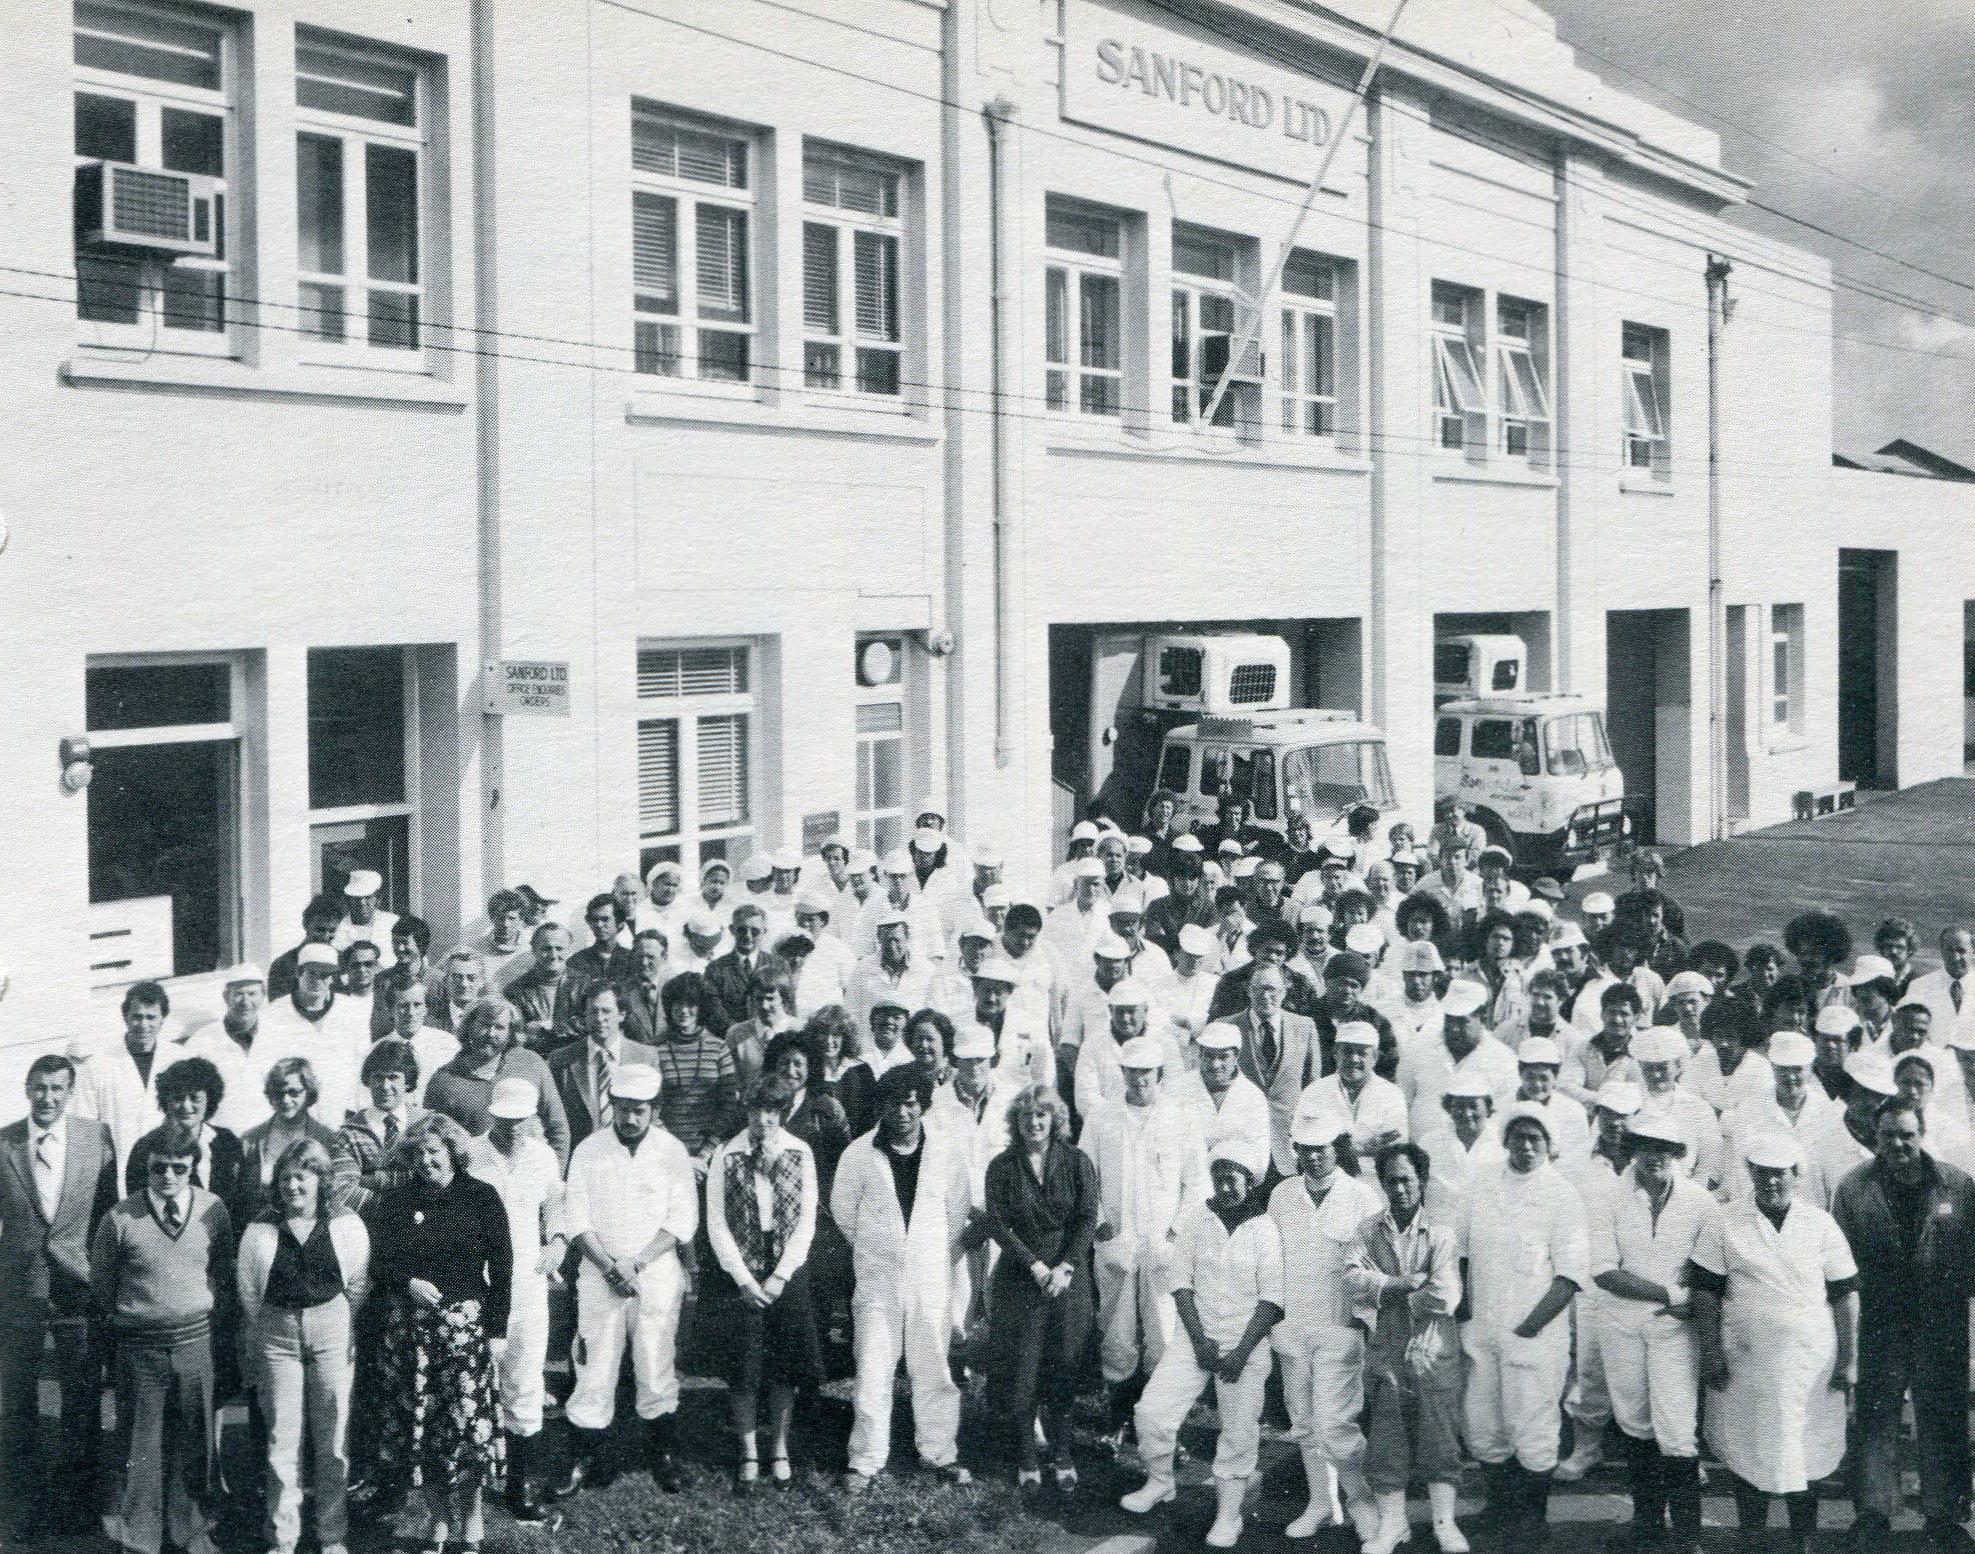 """Auckland Jellicoe Street staff in 1980. From """"The Story of Sandford LTD. by Paul Titchener"""" 1981."""